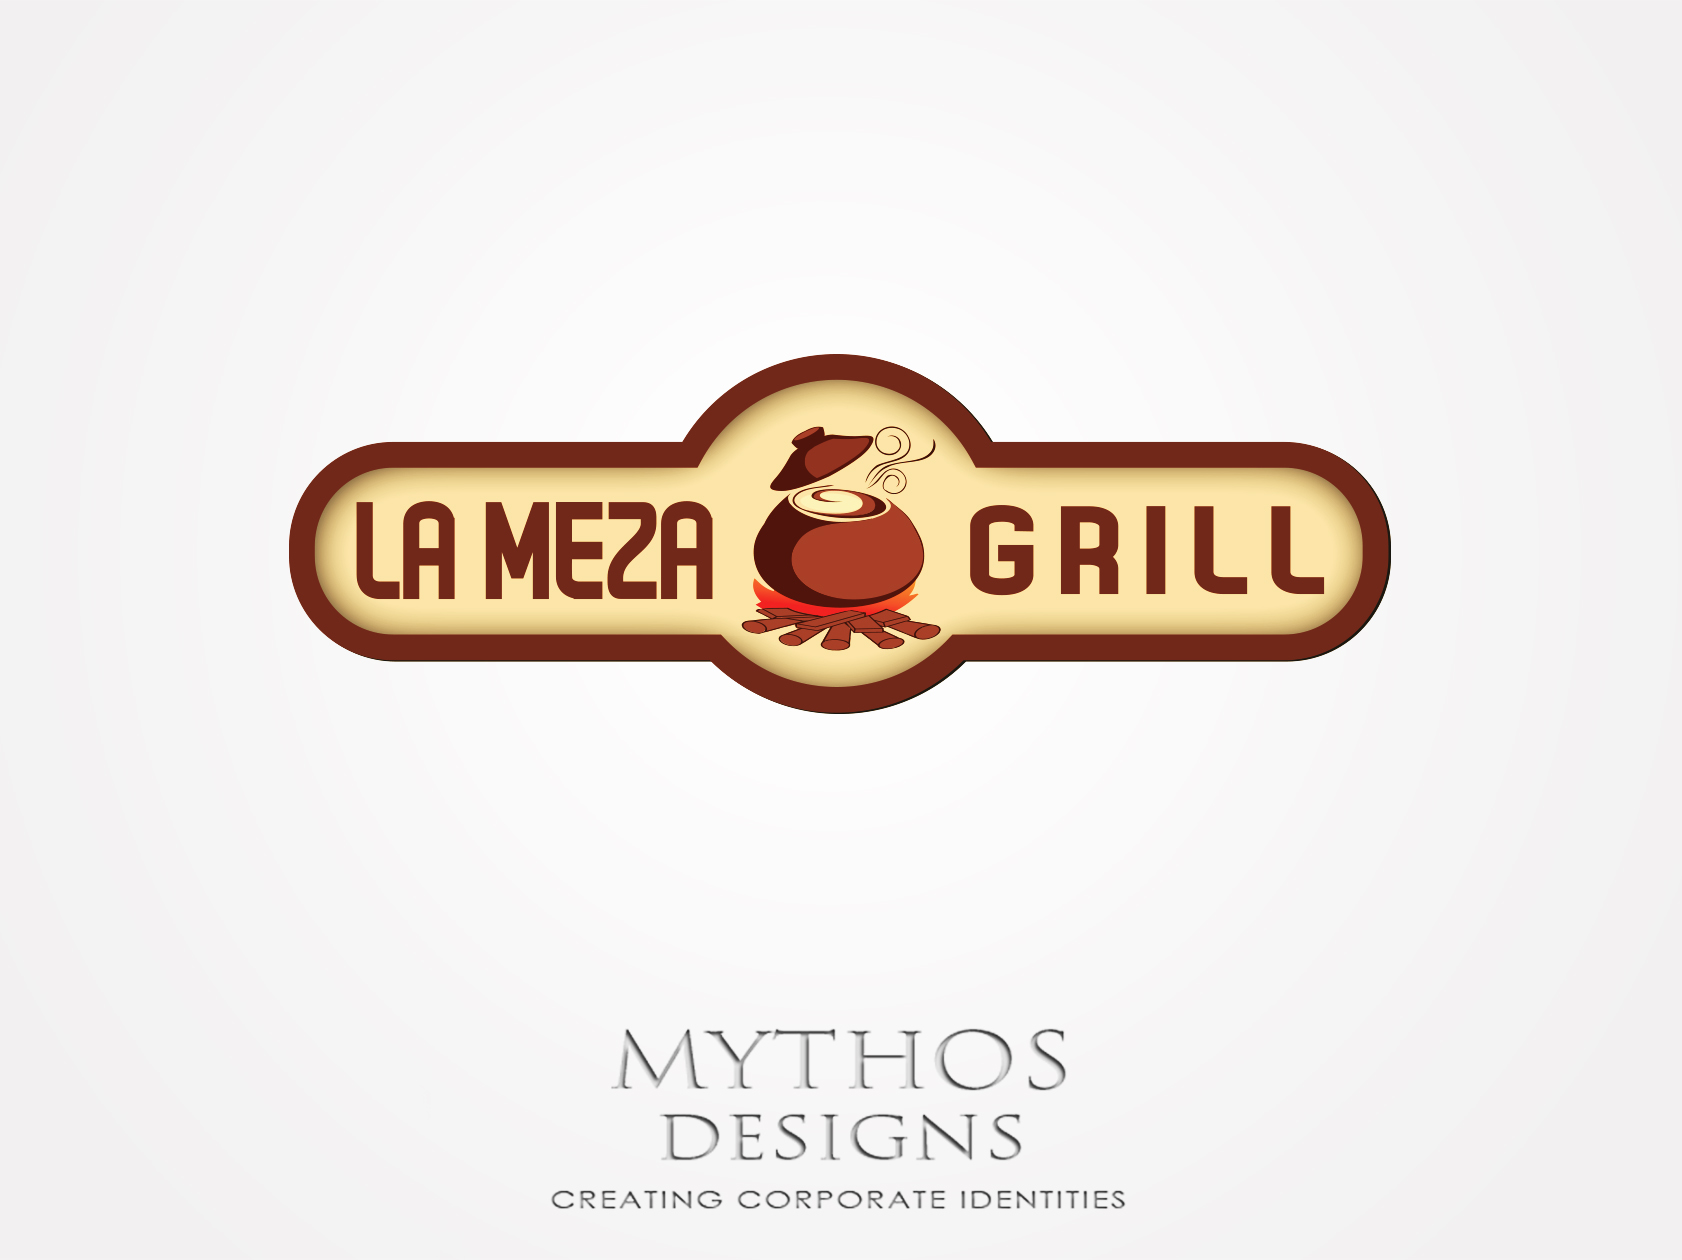 Logo design contests inspiring for la meza